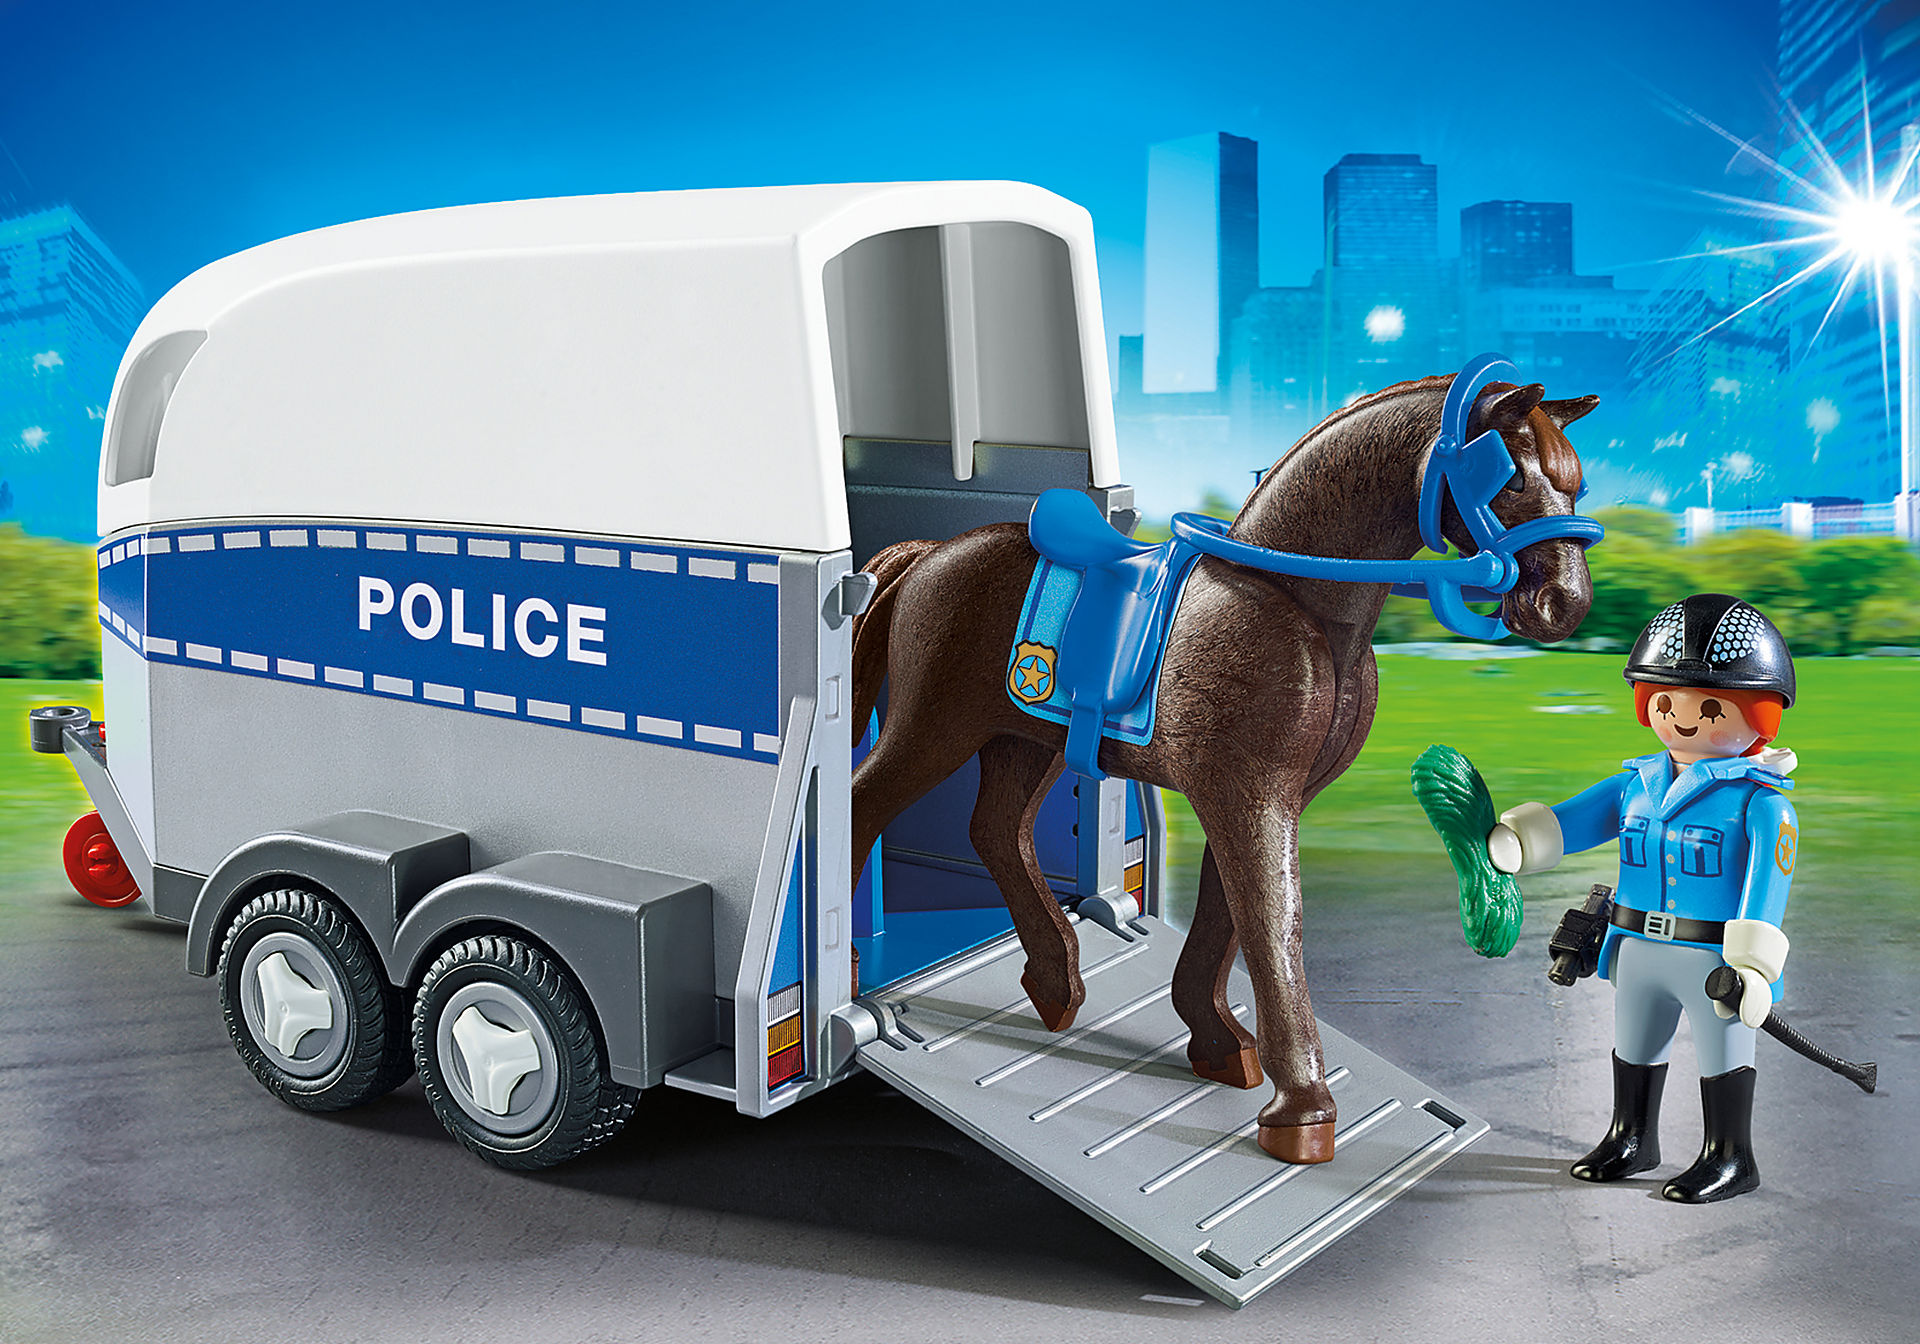 6922 Police with Horse and Trailer zoom image1